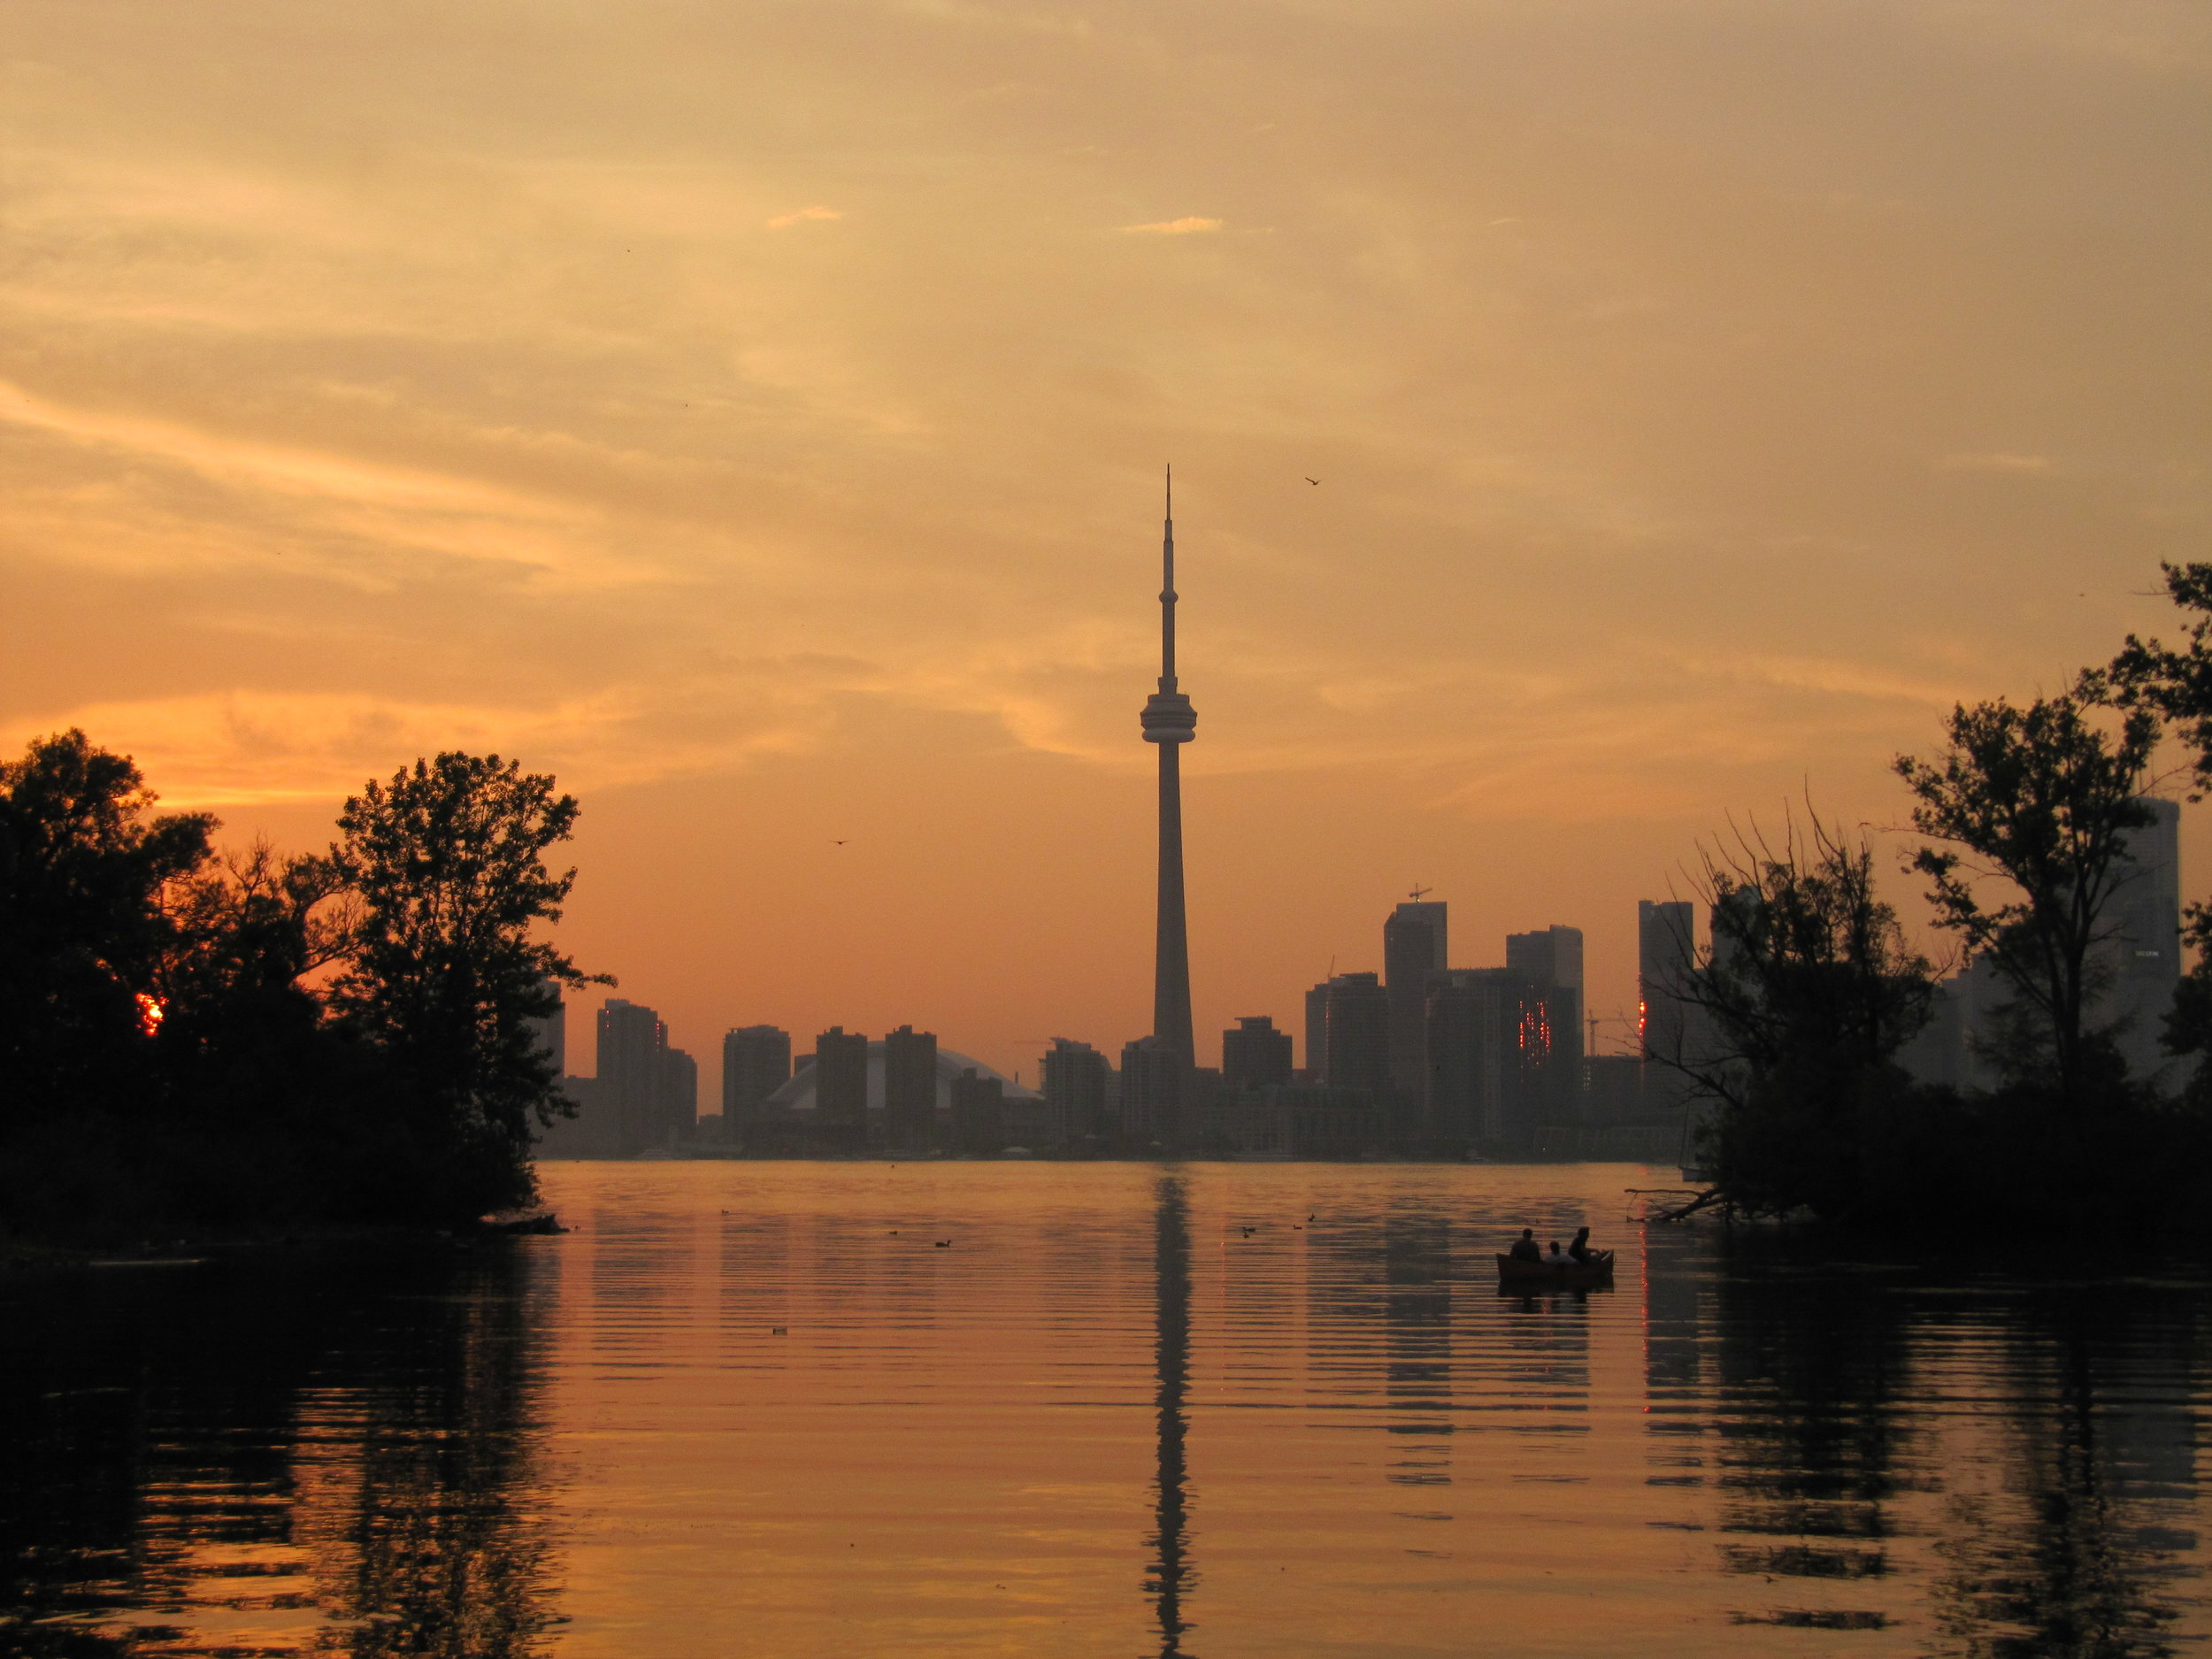 Toronto - ActiveDays is a community with a passion to get outdoors, explore beautiful places and learn new skills. Join us and explore all that Ontario has to offer with our ActiveDays from Toronto.